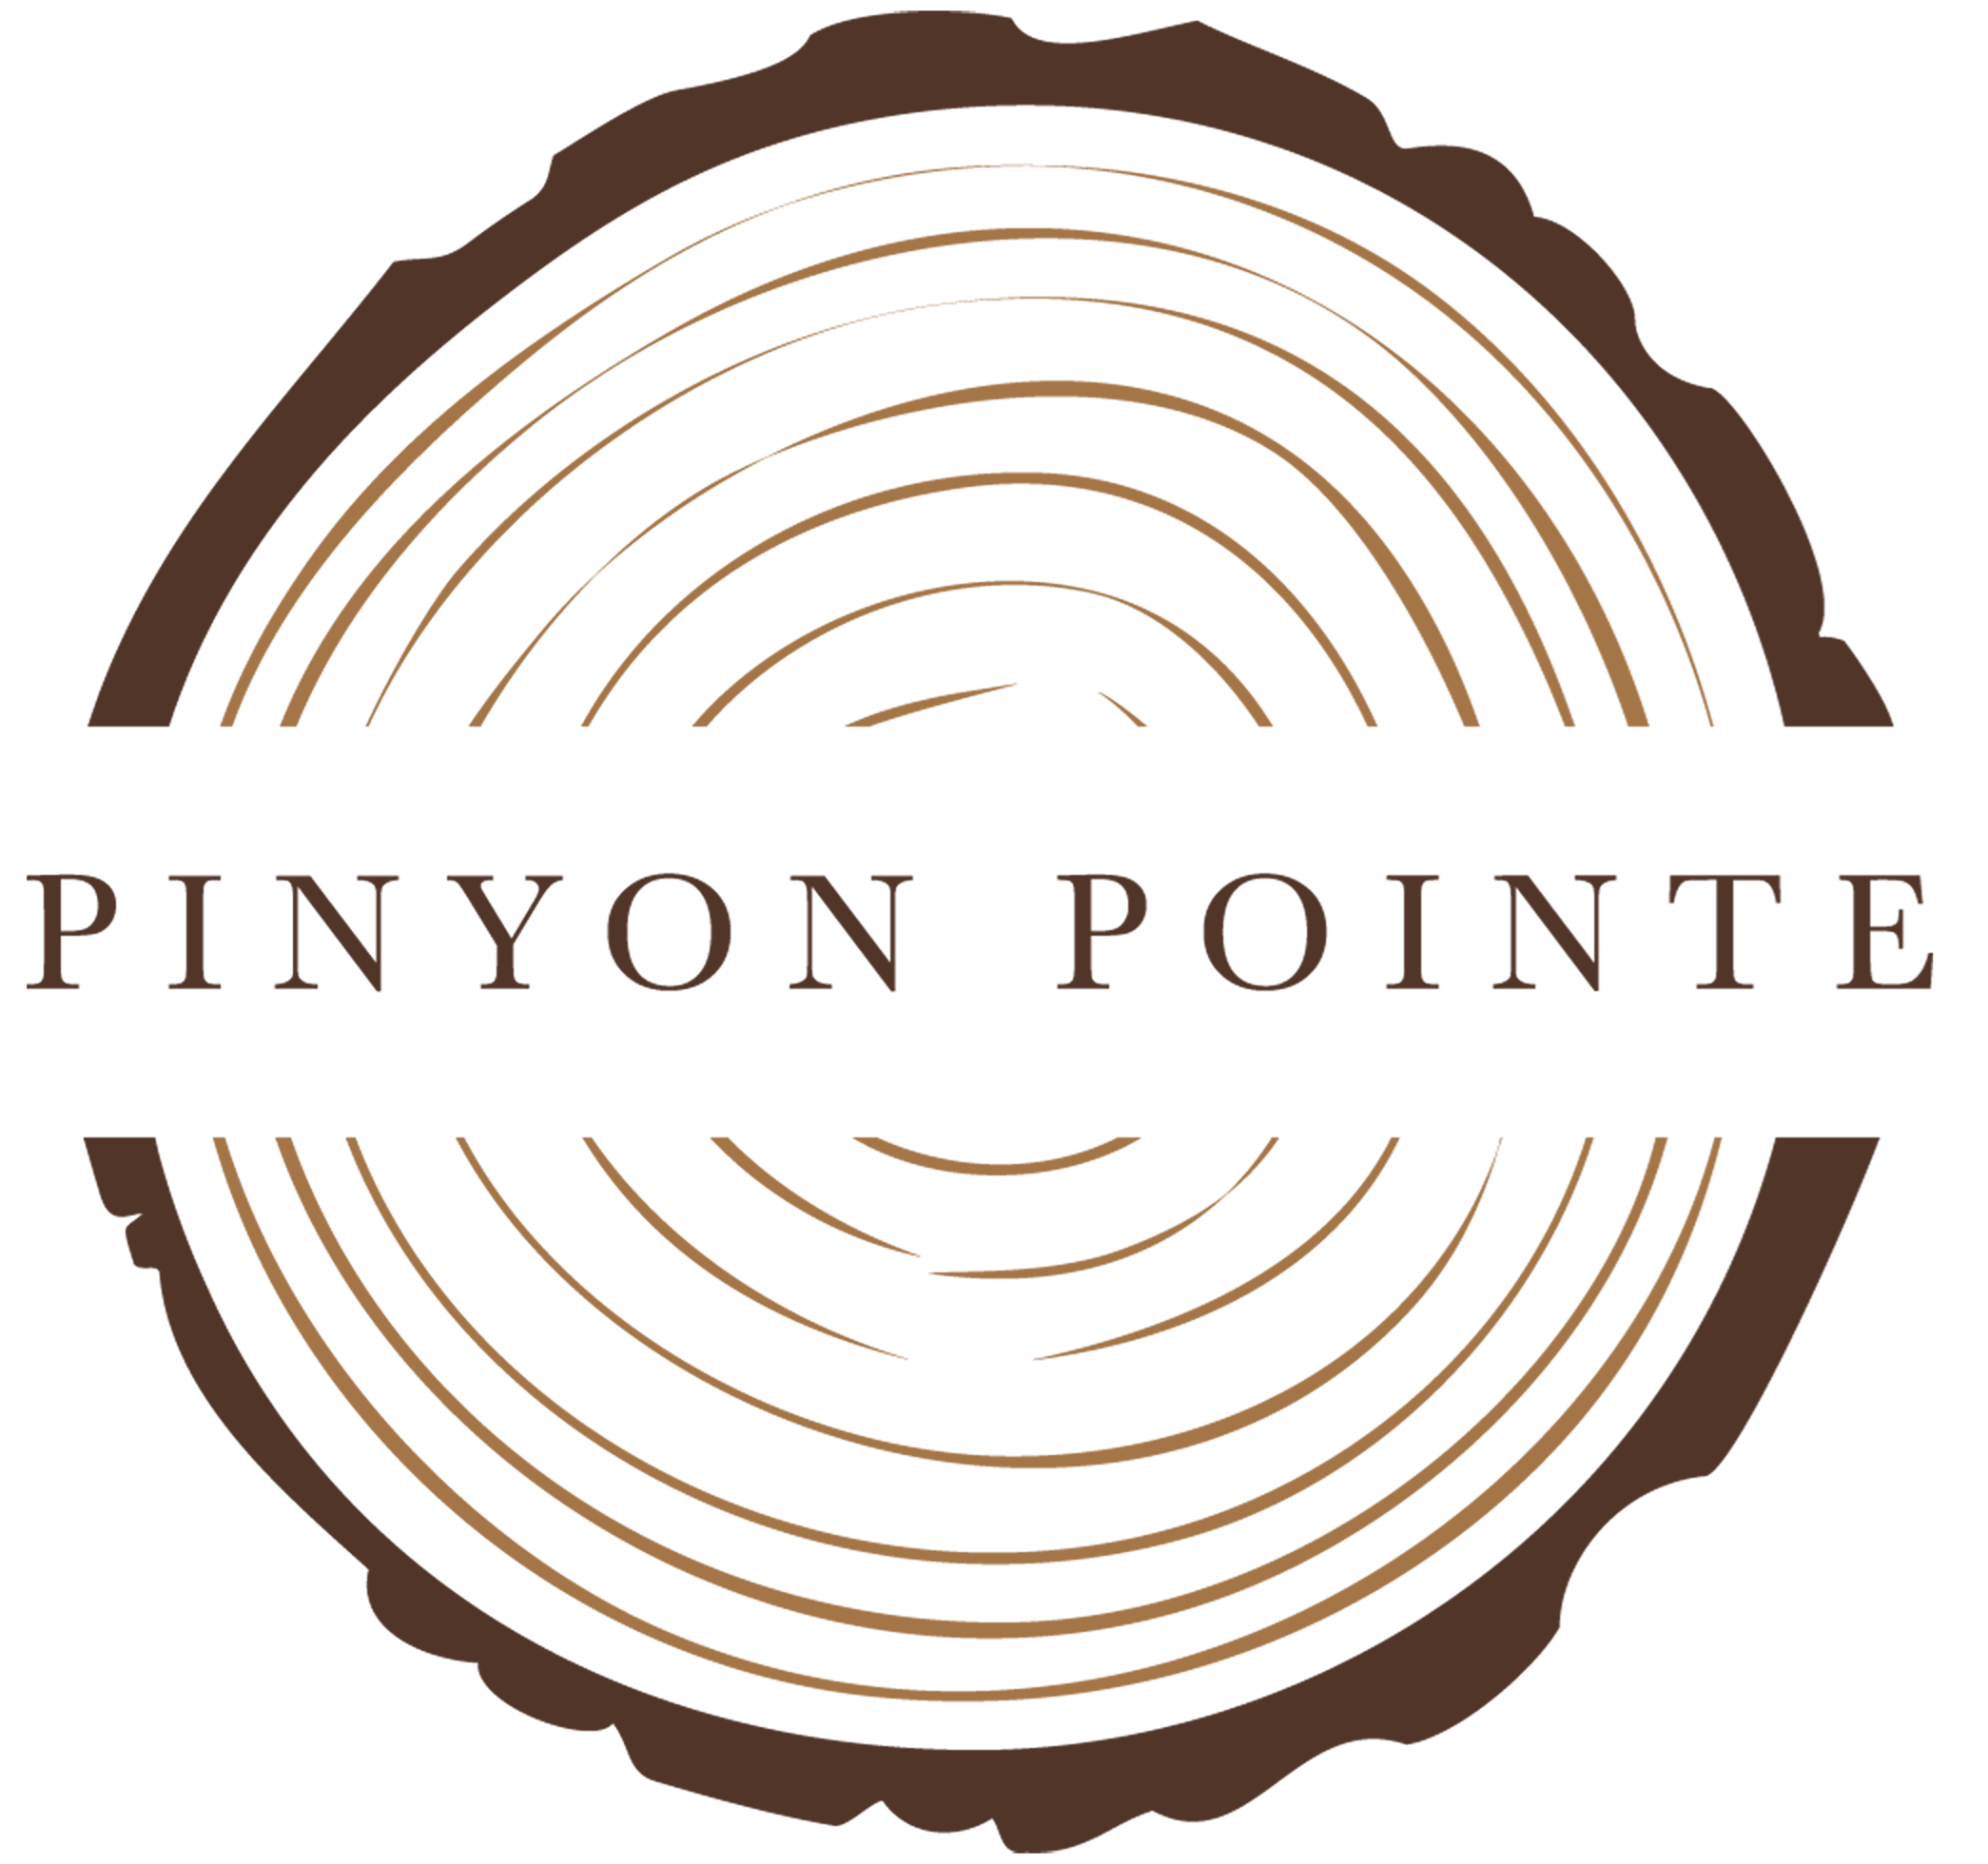 Pinyon Pointe, Loveland, CO